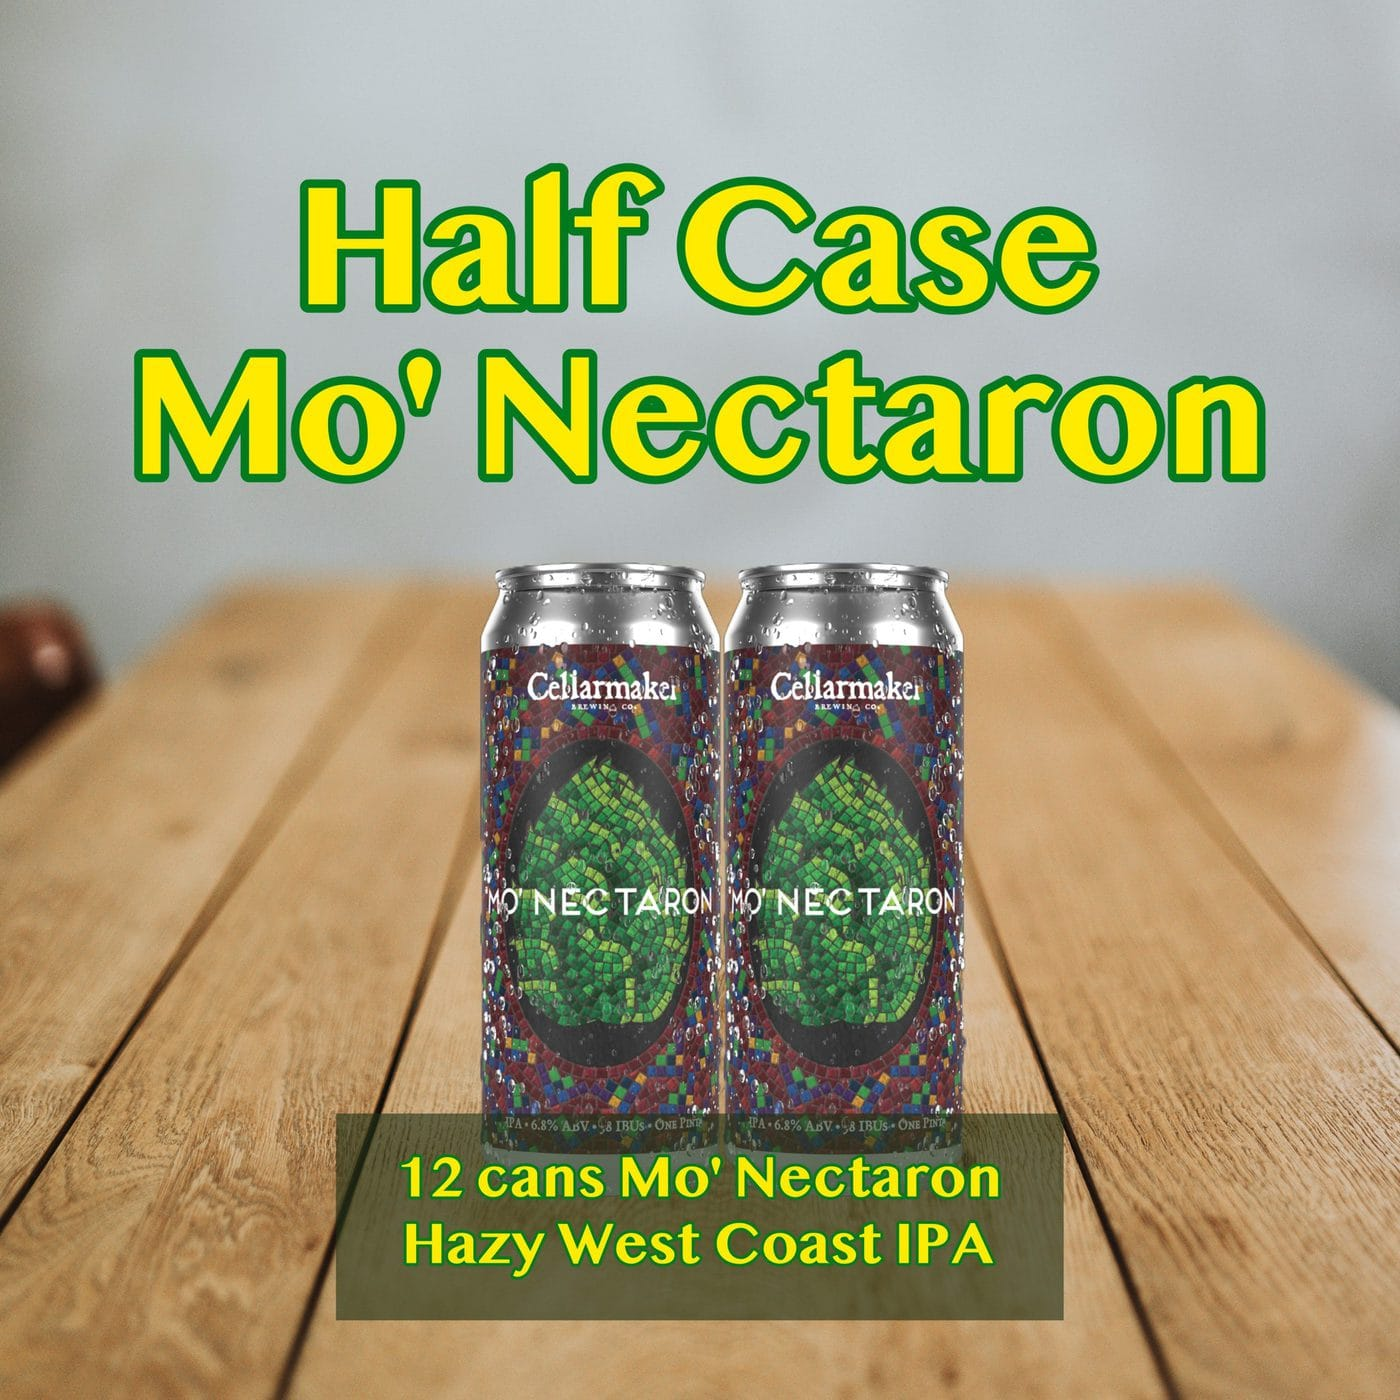 HALF CASE 12 CANS Mo' Nectaron NEW HAZY IPA – Shipping Out Tuesday 3/2 For Next Day Delivery*